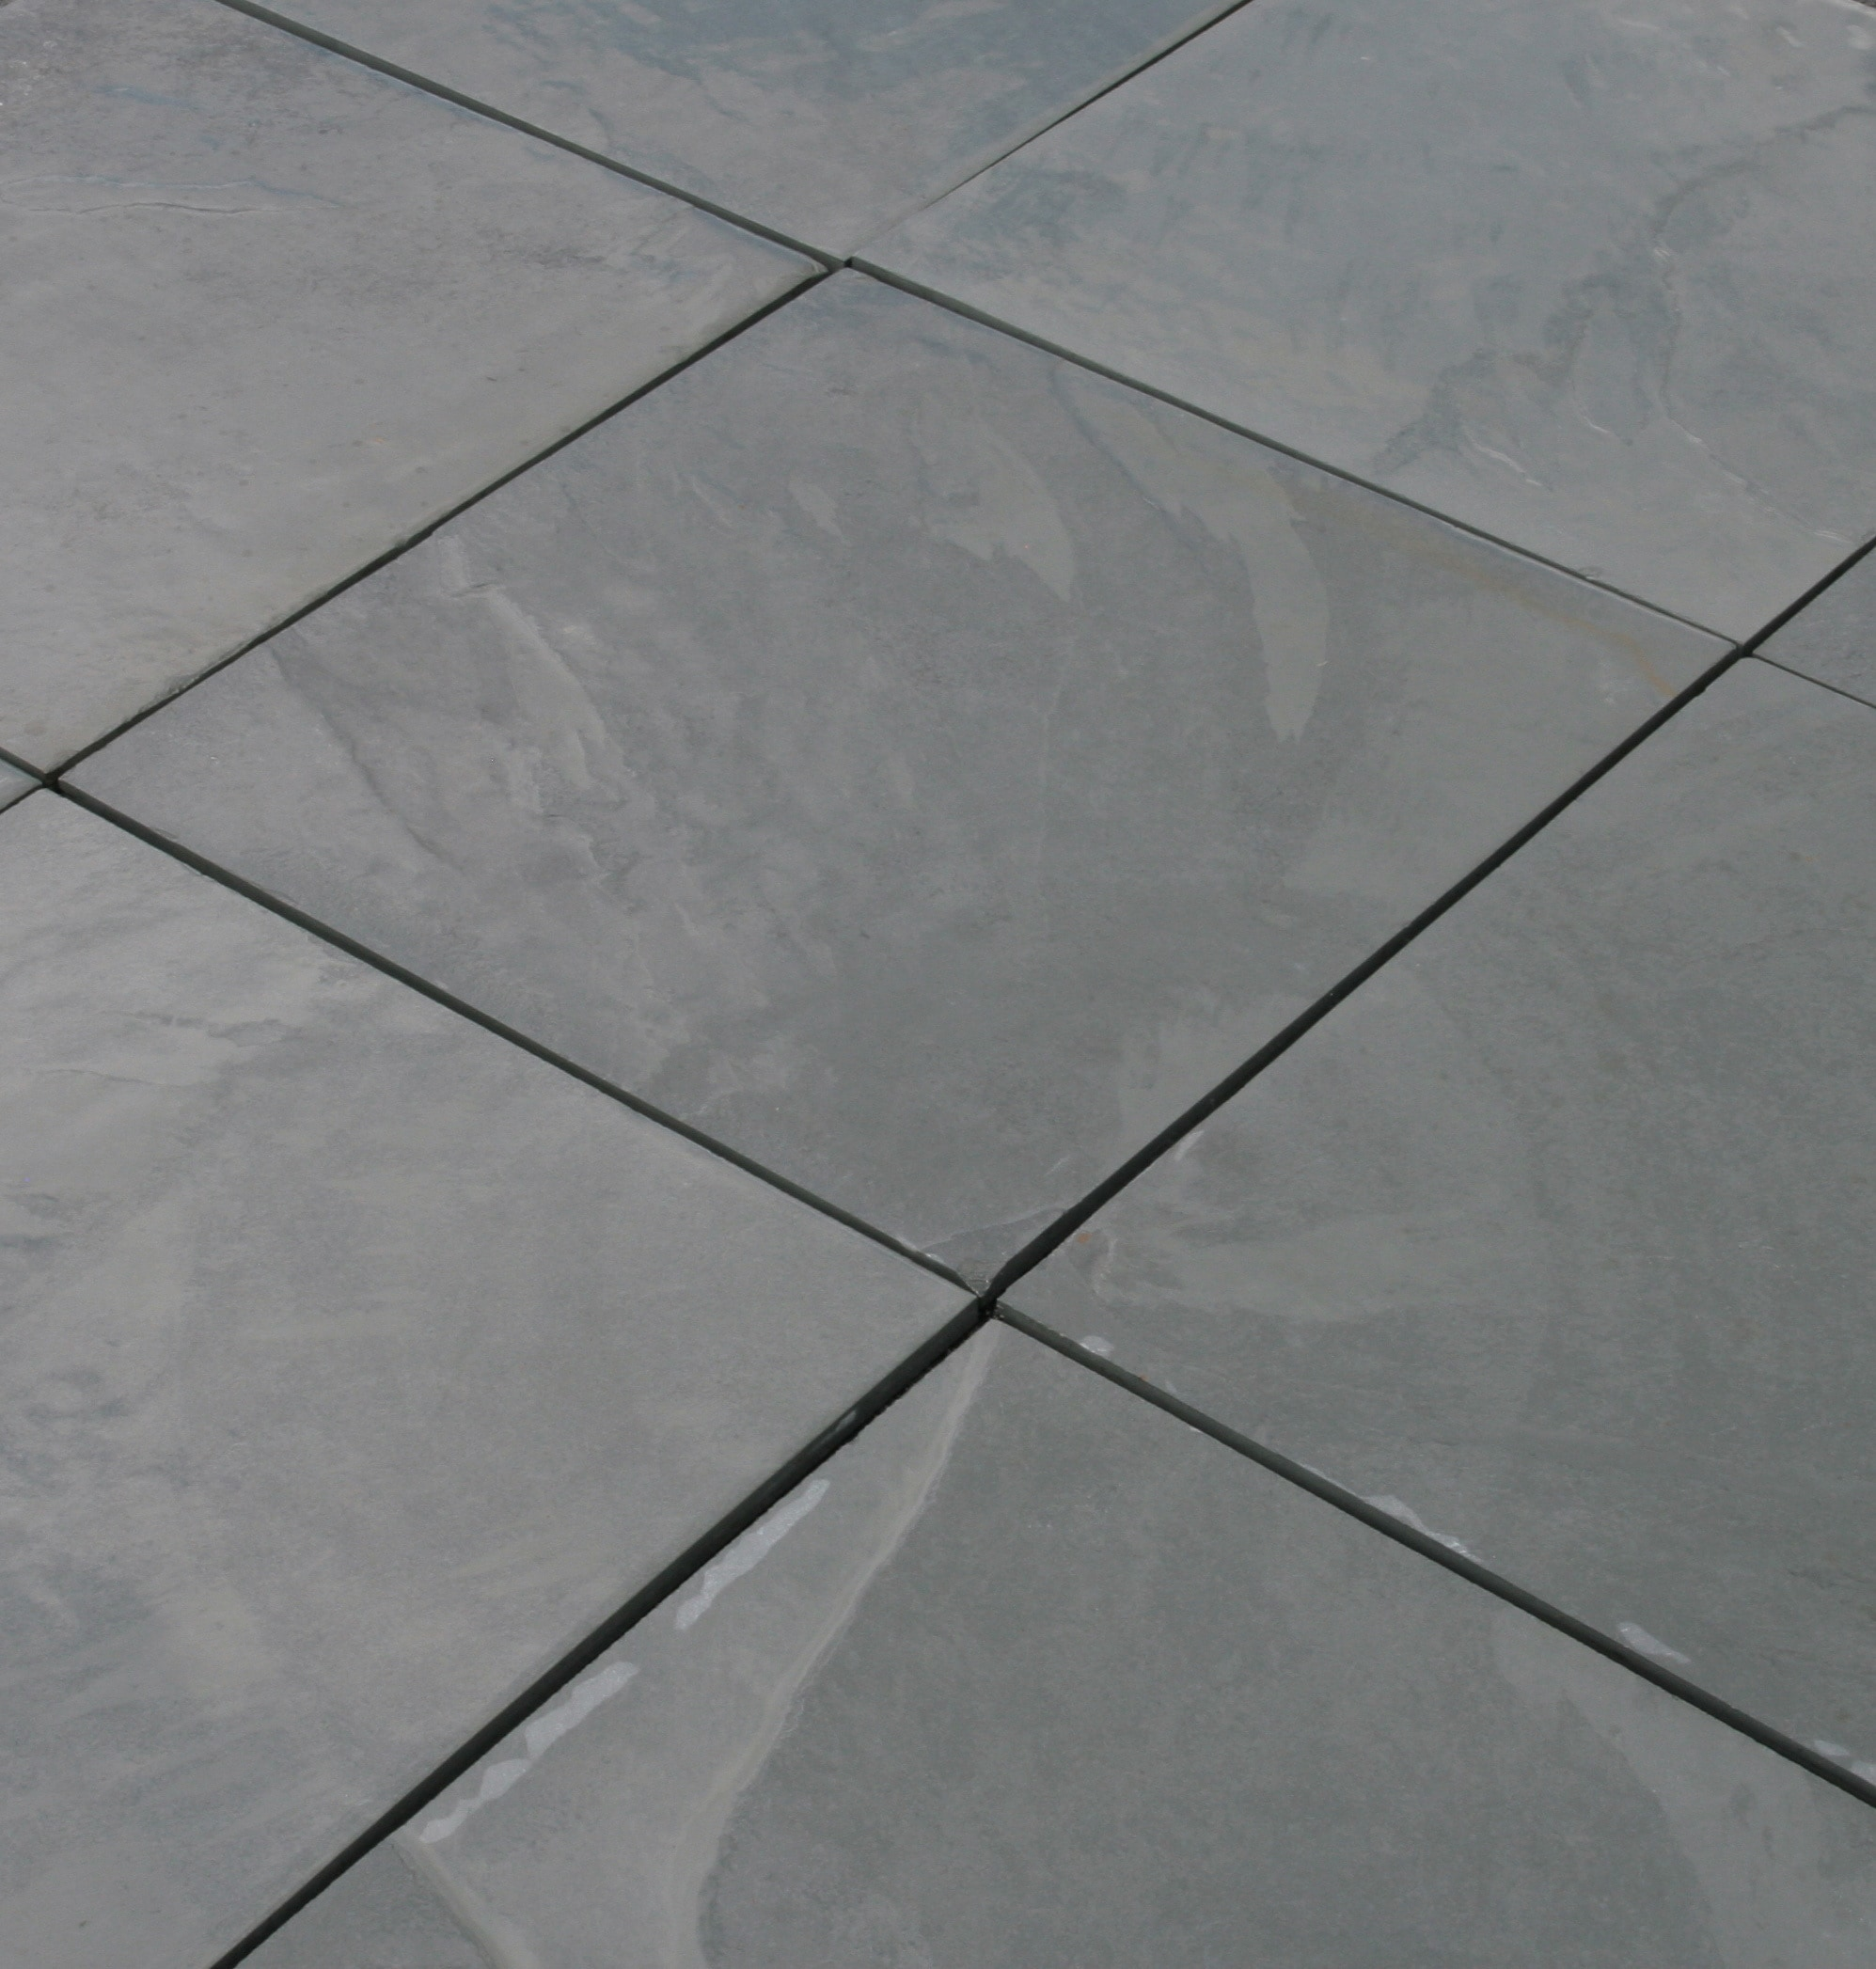 Slate tile builddirect slate tile montauk blue natural cleft 12x12 dailygadgetfo Choice Image